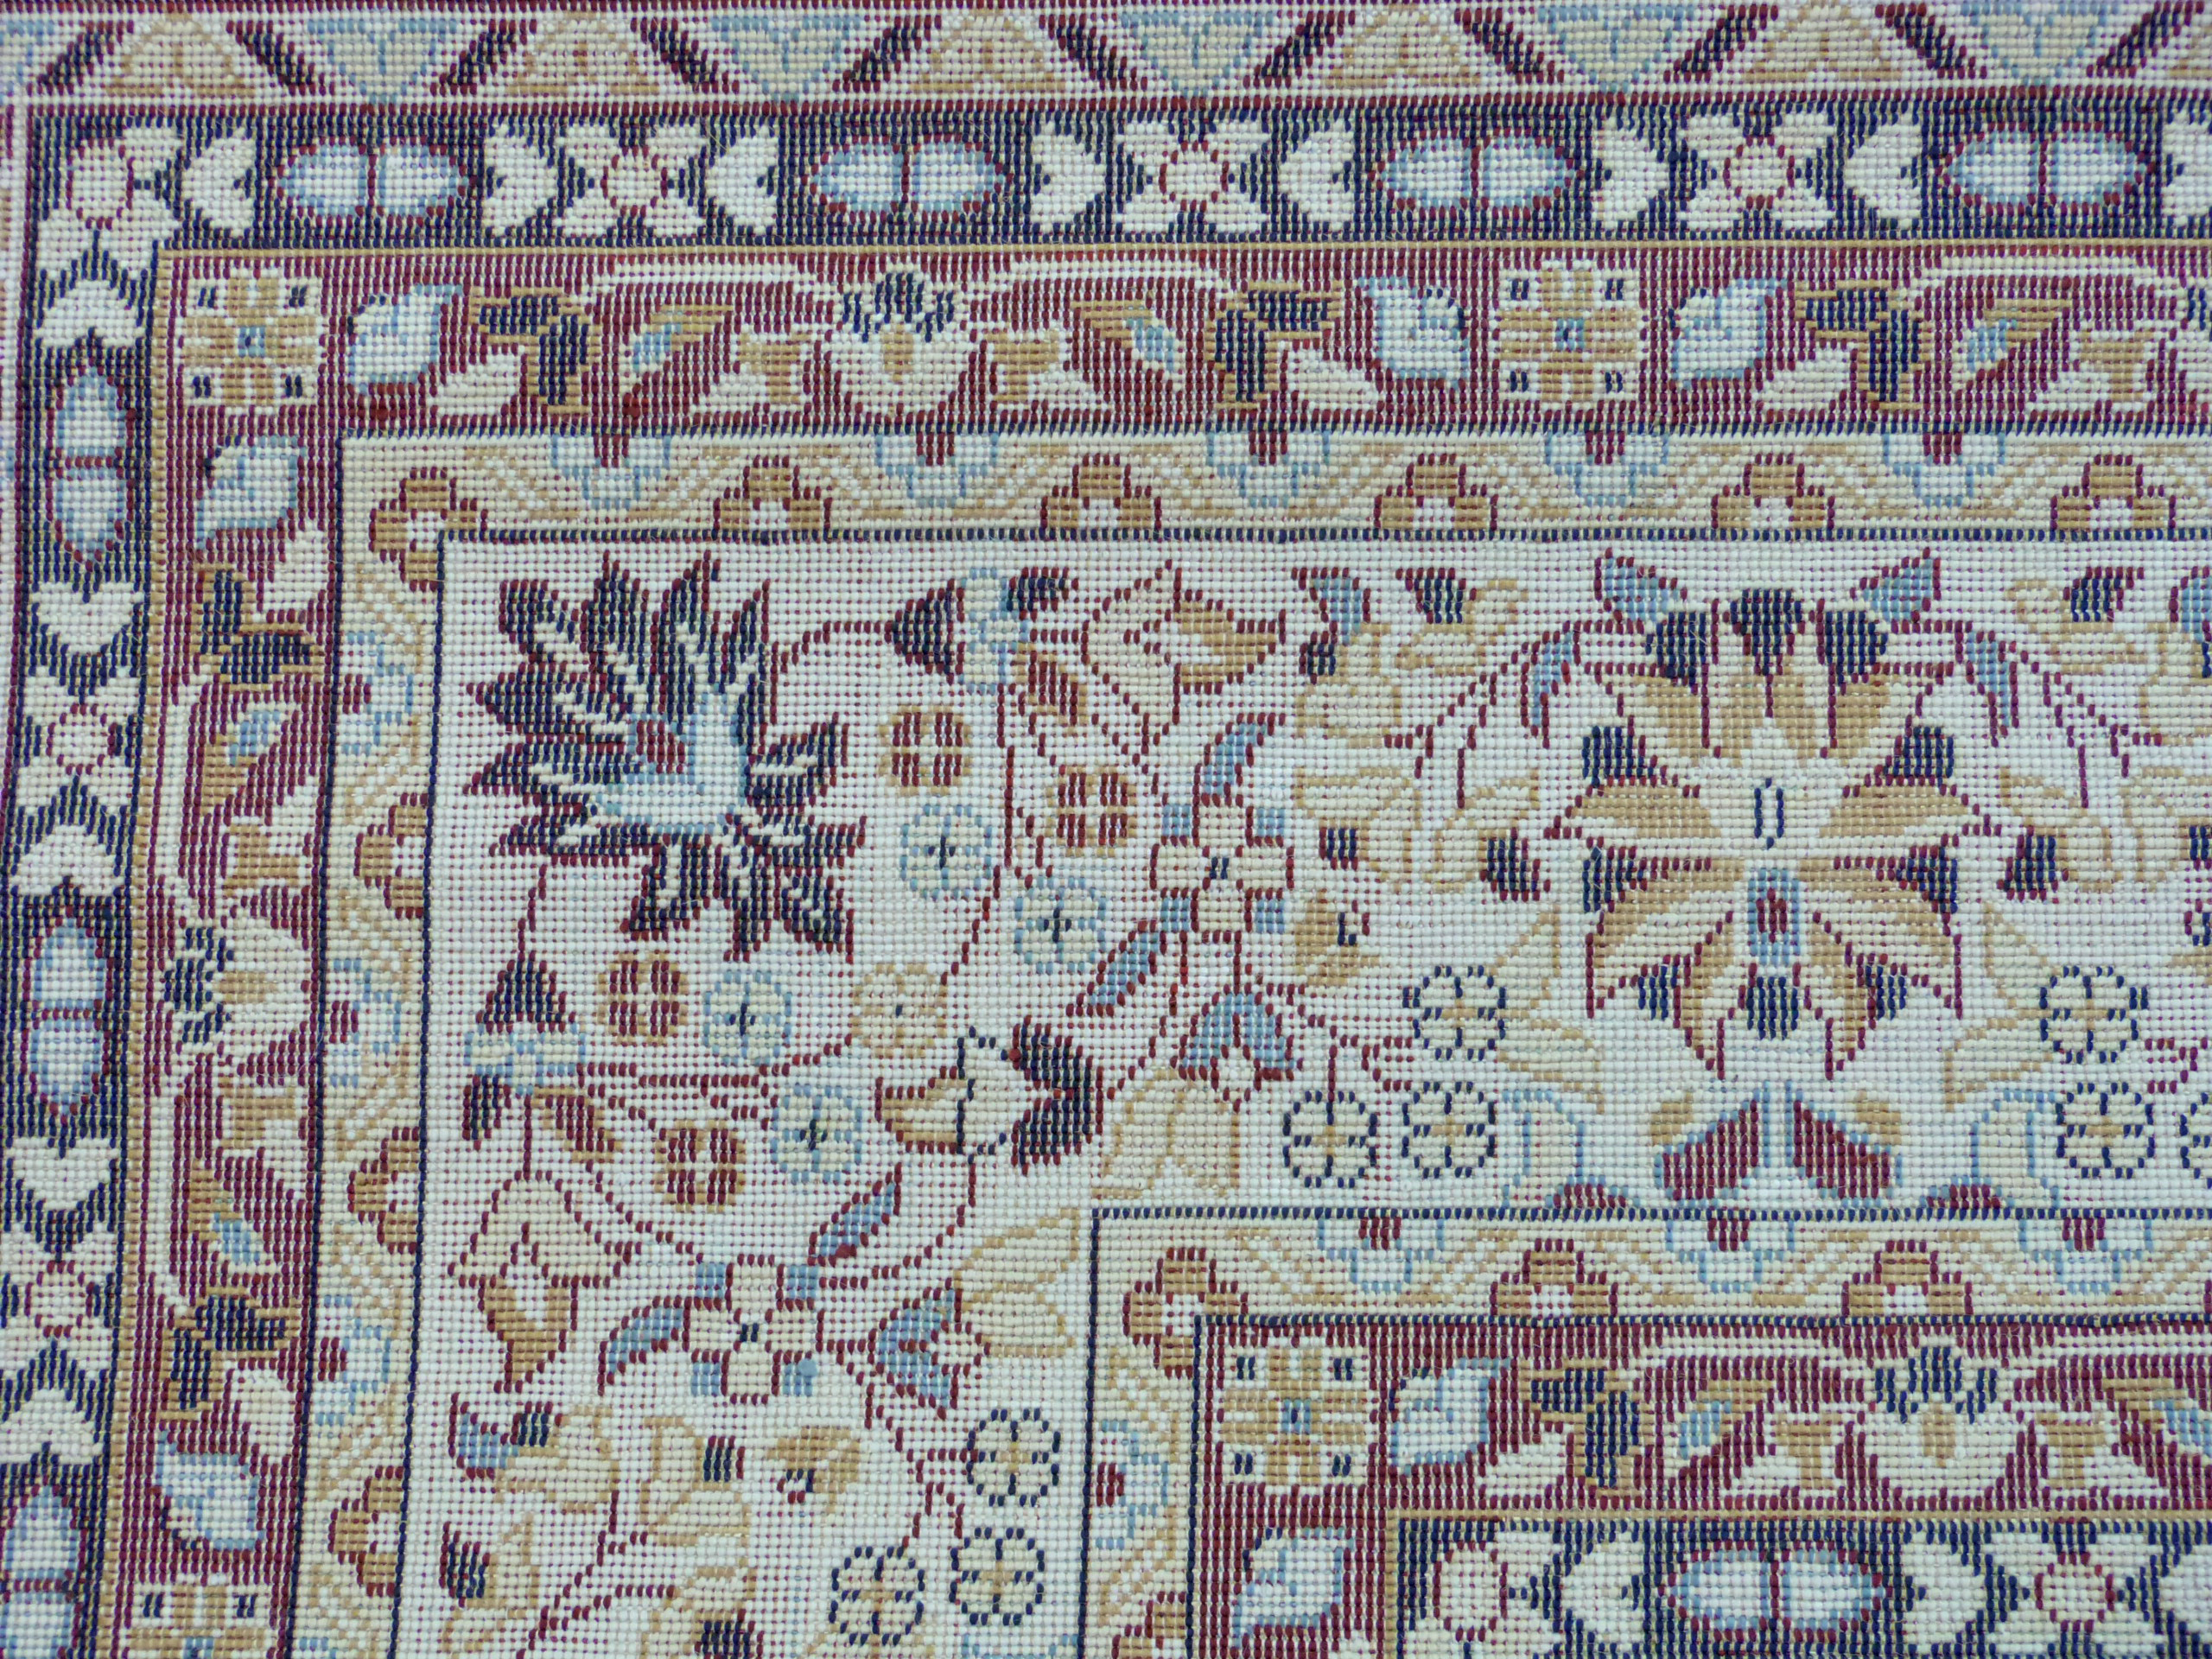 Rich blue ground full pile Turkish Carpet, with floral medallion design 320cm x 200cm approximately - Image 7 of 8